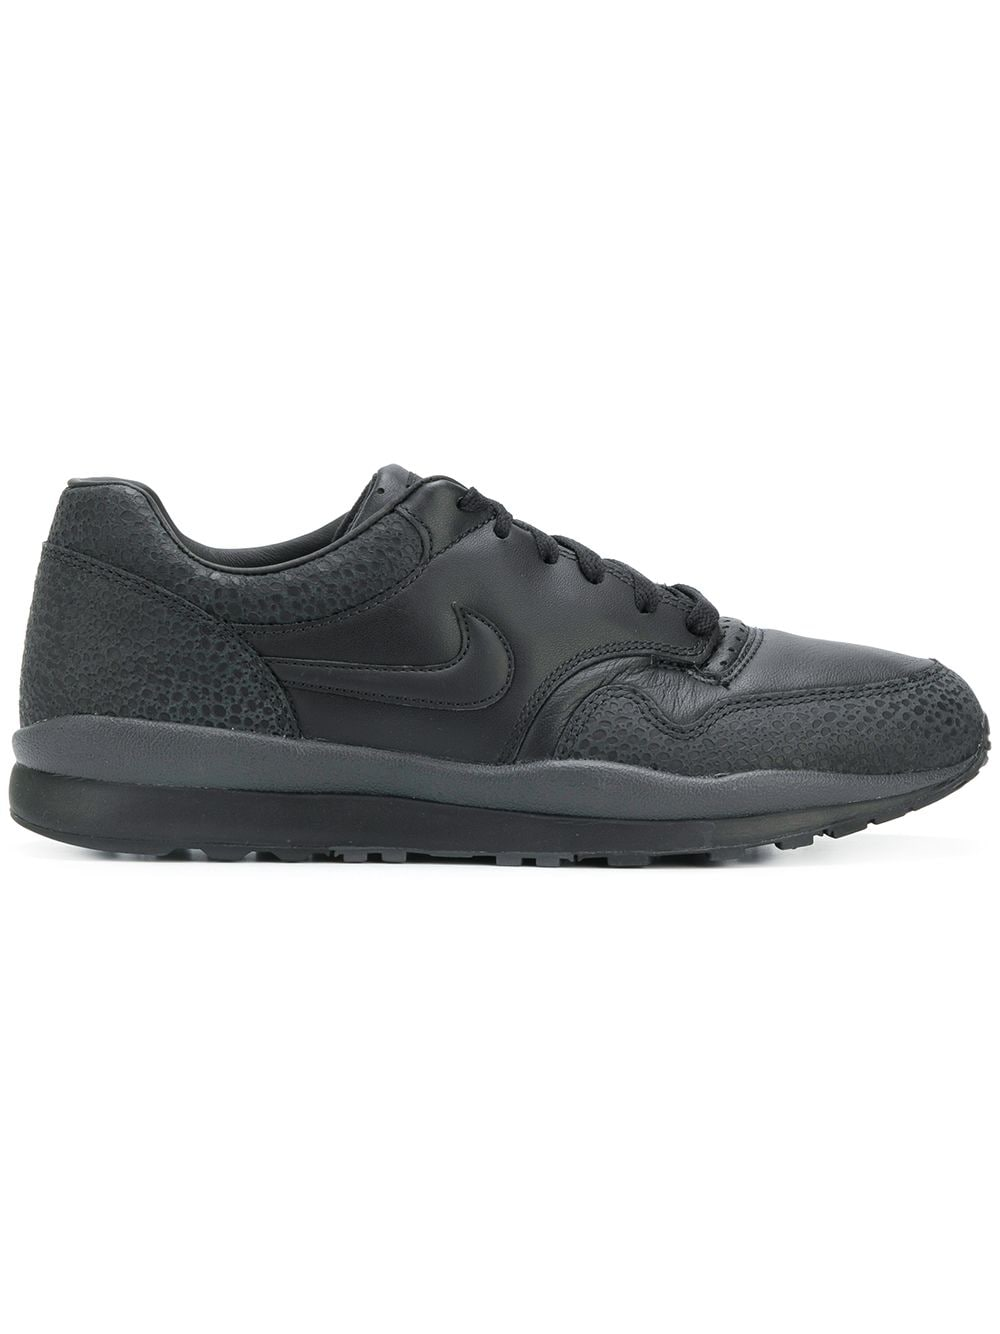 Nike Air Safari sneakers - Black von Nike